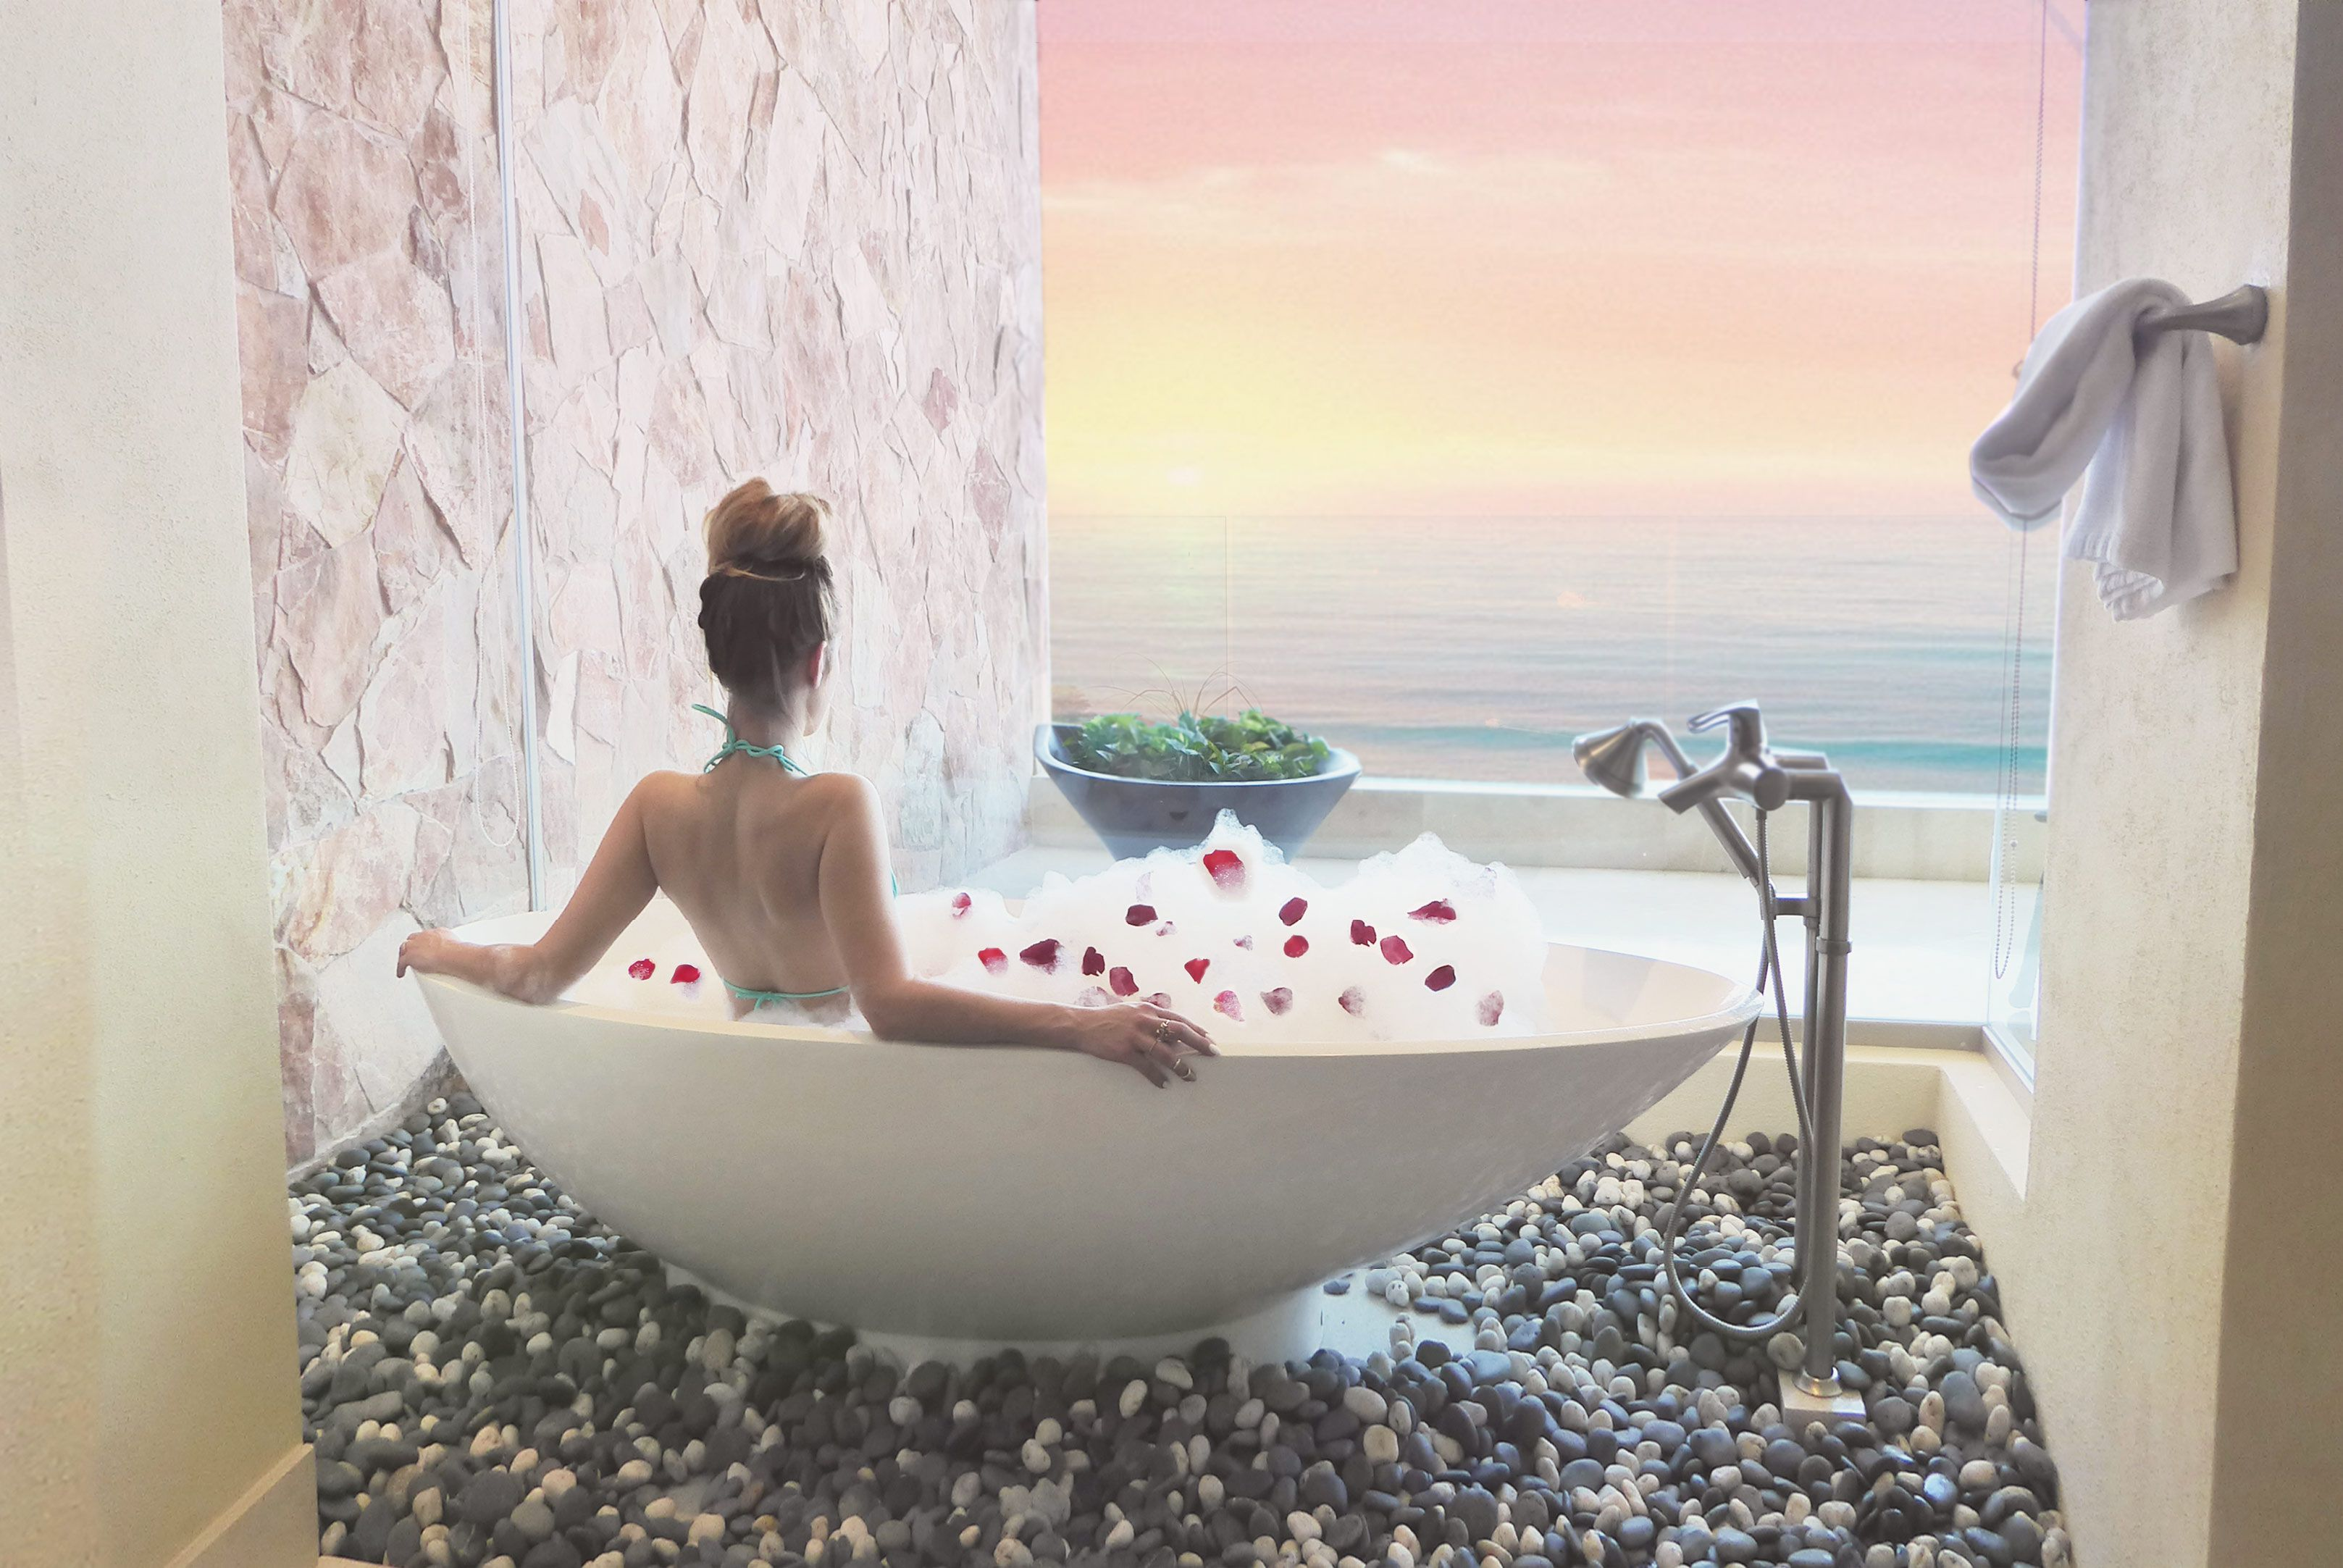 Relaxing in a beautiful bathtub with bubbles and rose petals in ...